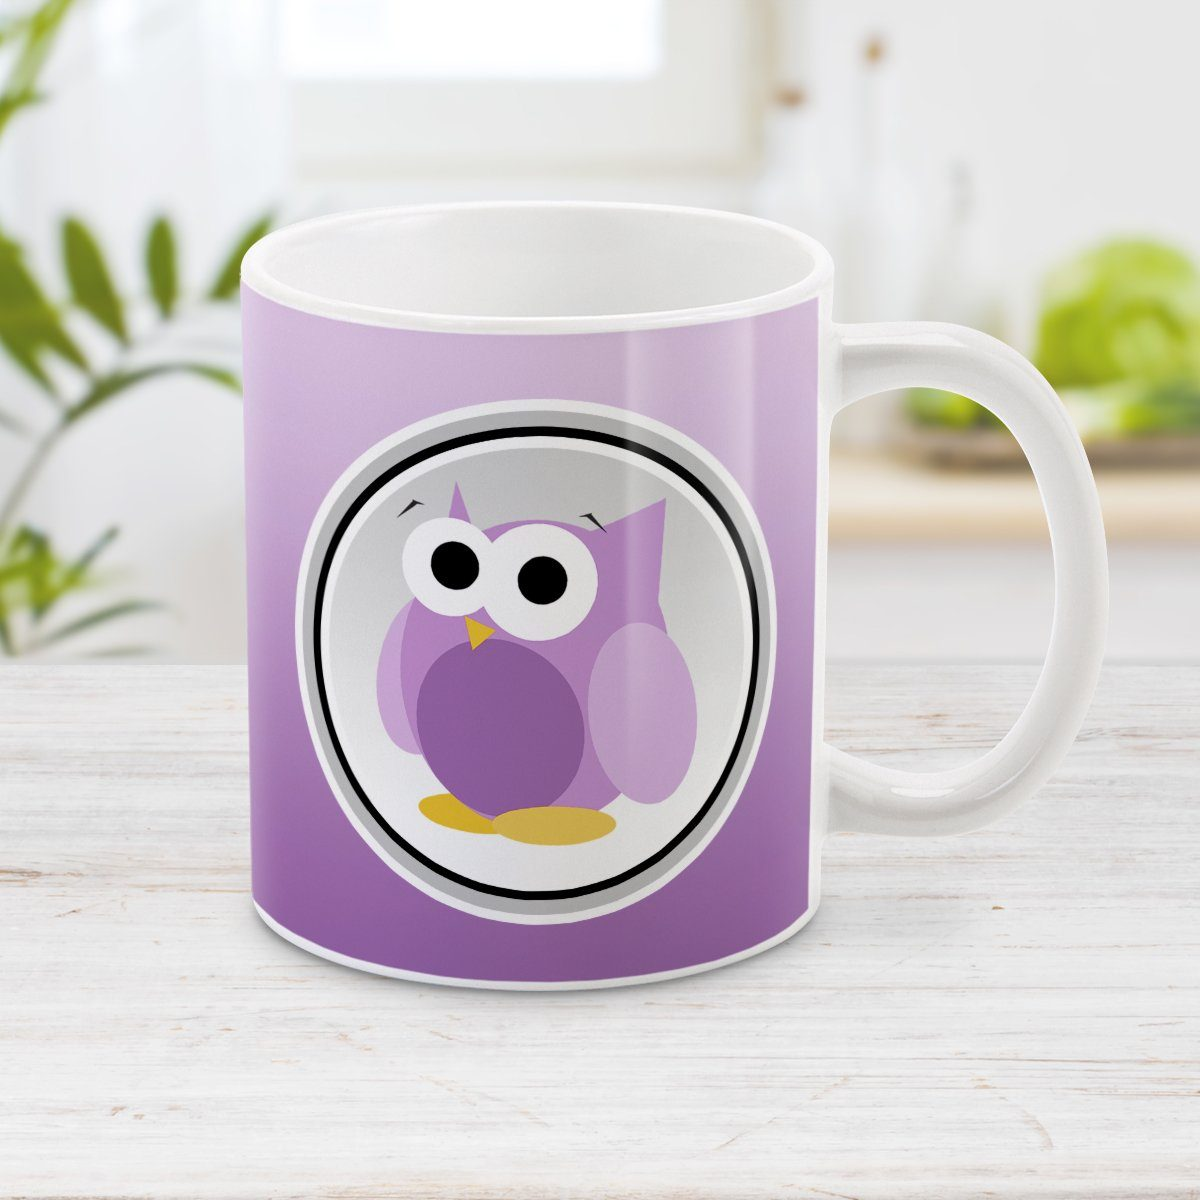 Purple Owl Mug - Funny Cute Purple Owl Mug at Amy's Coffee Mugs